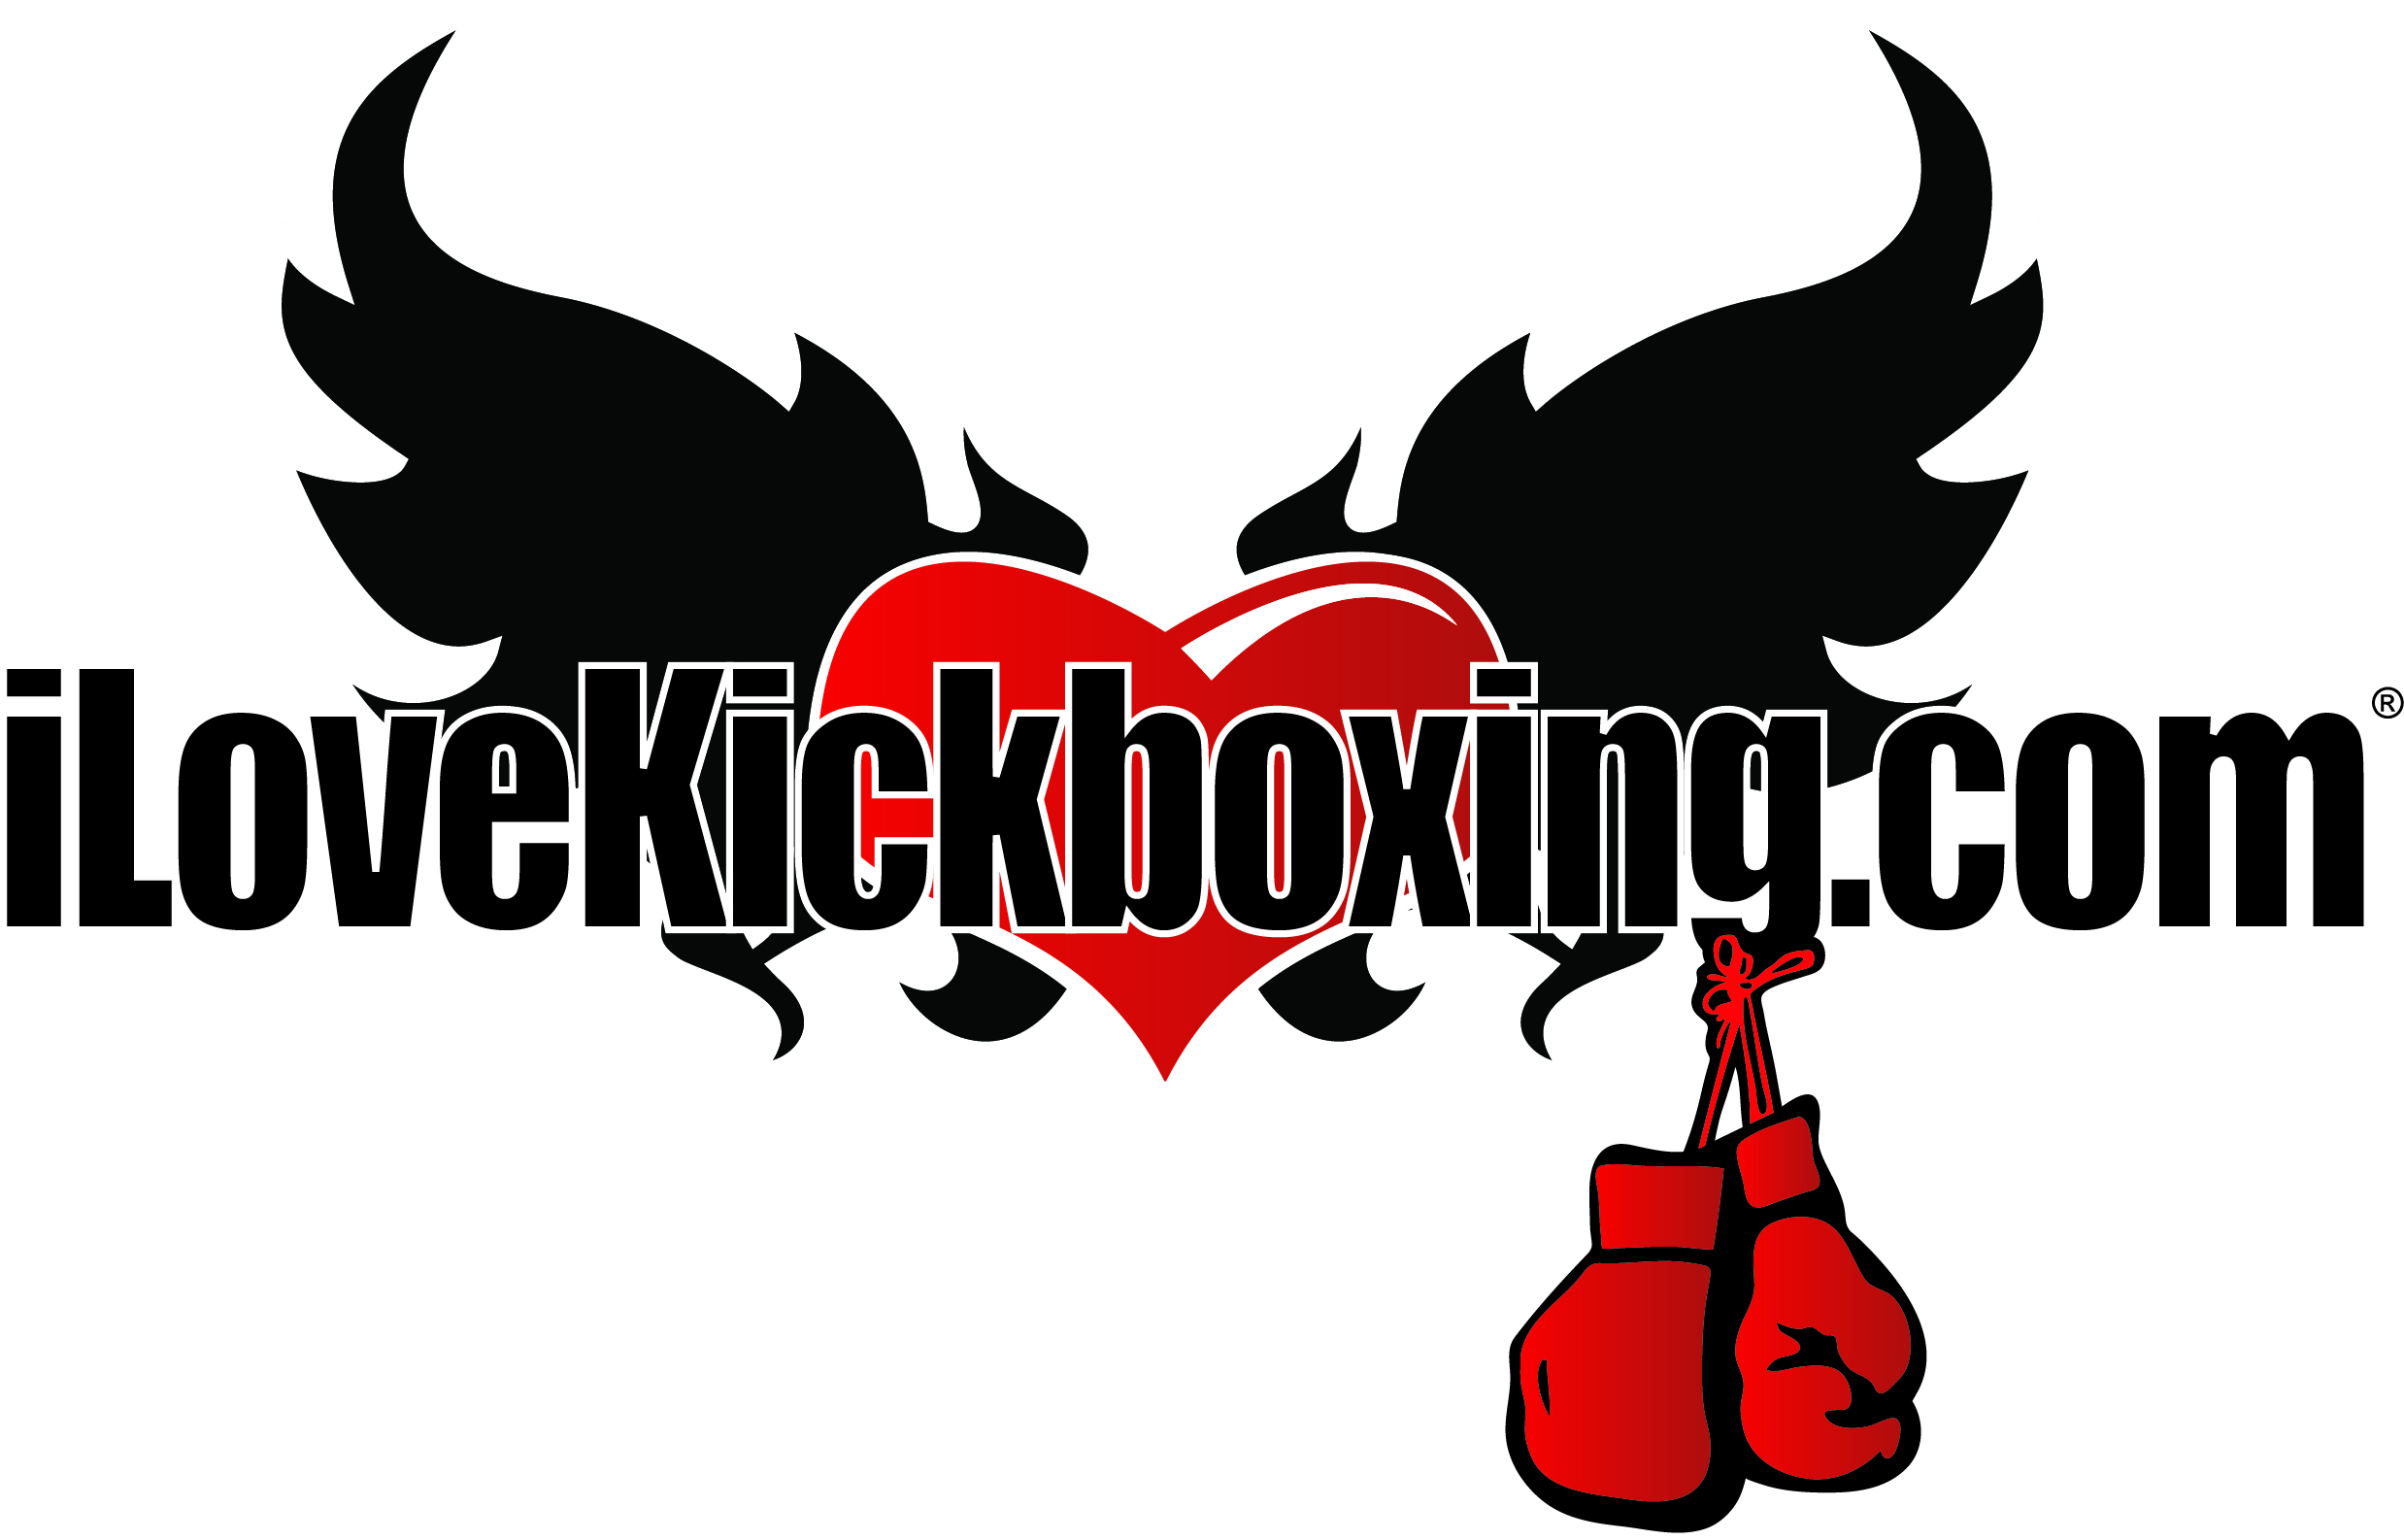 I Love Kickboxing - Kendall